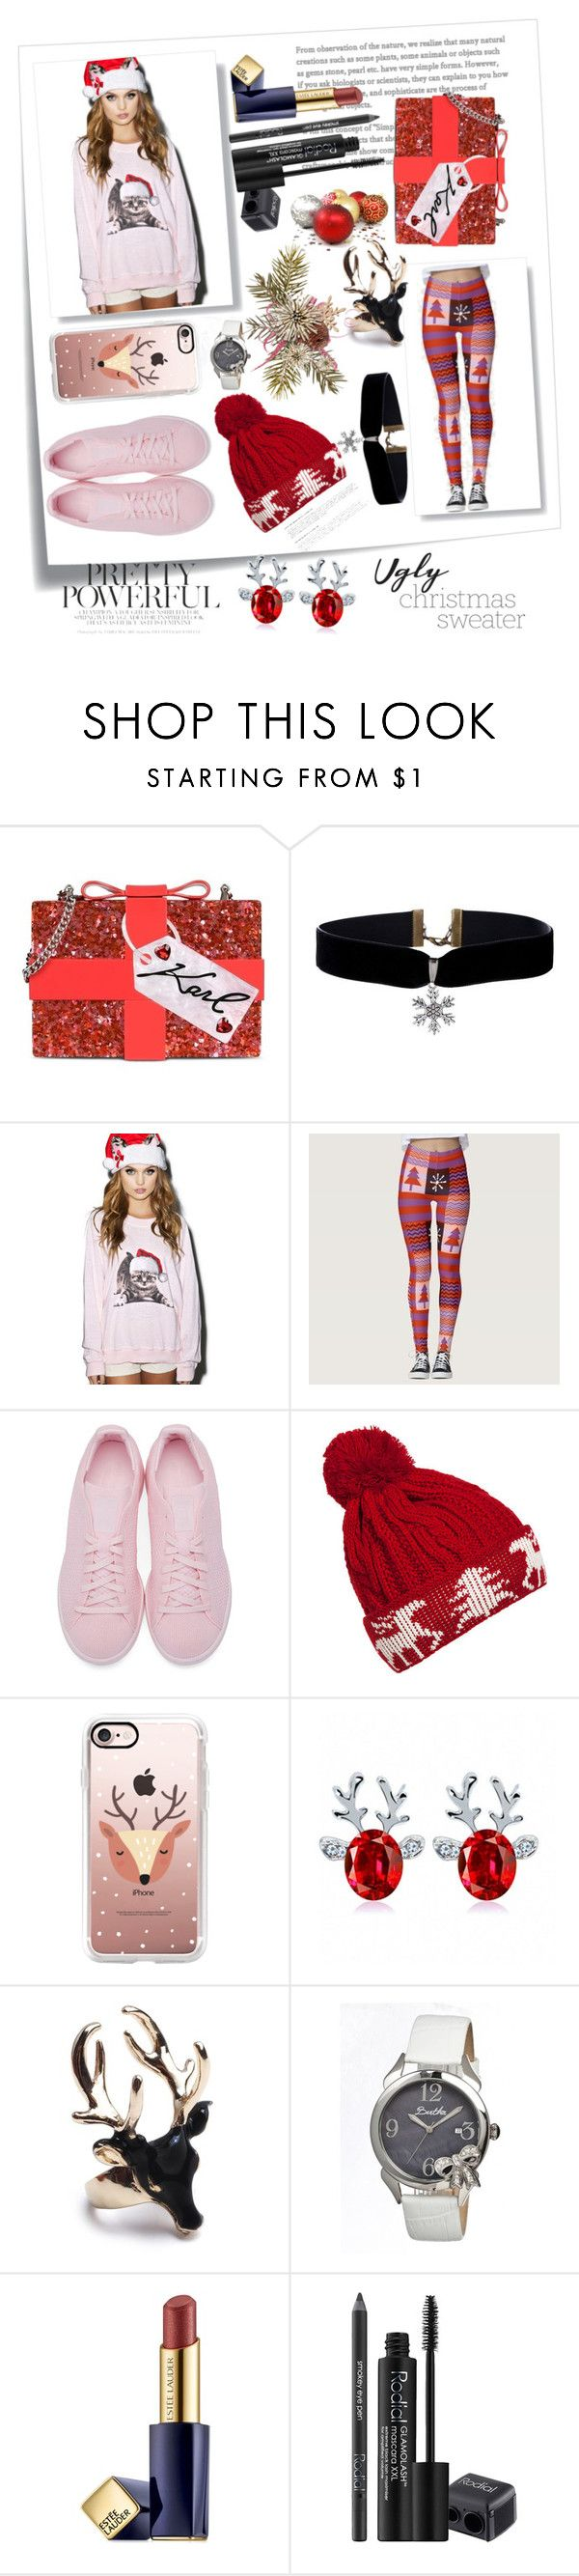 ugly Christmas sweater by whovienforlife on Polyvore featuring Wildfox, adidas Originals, Karl Lagerfeld, Bertha, Casetify, WithChic, Rodial, Estée Lauder and Post-It